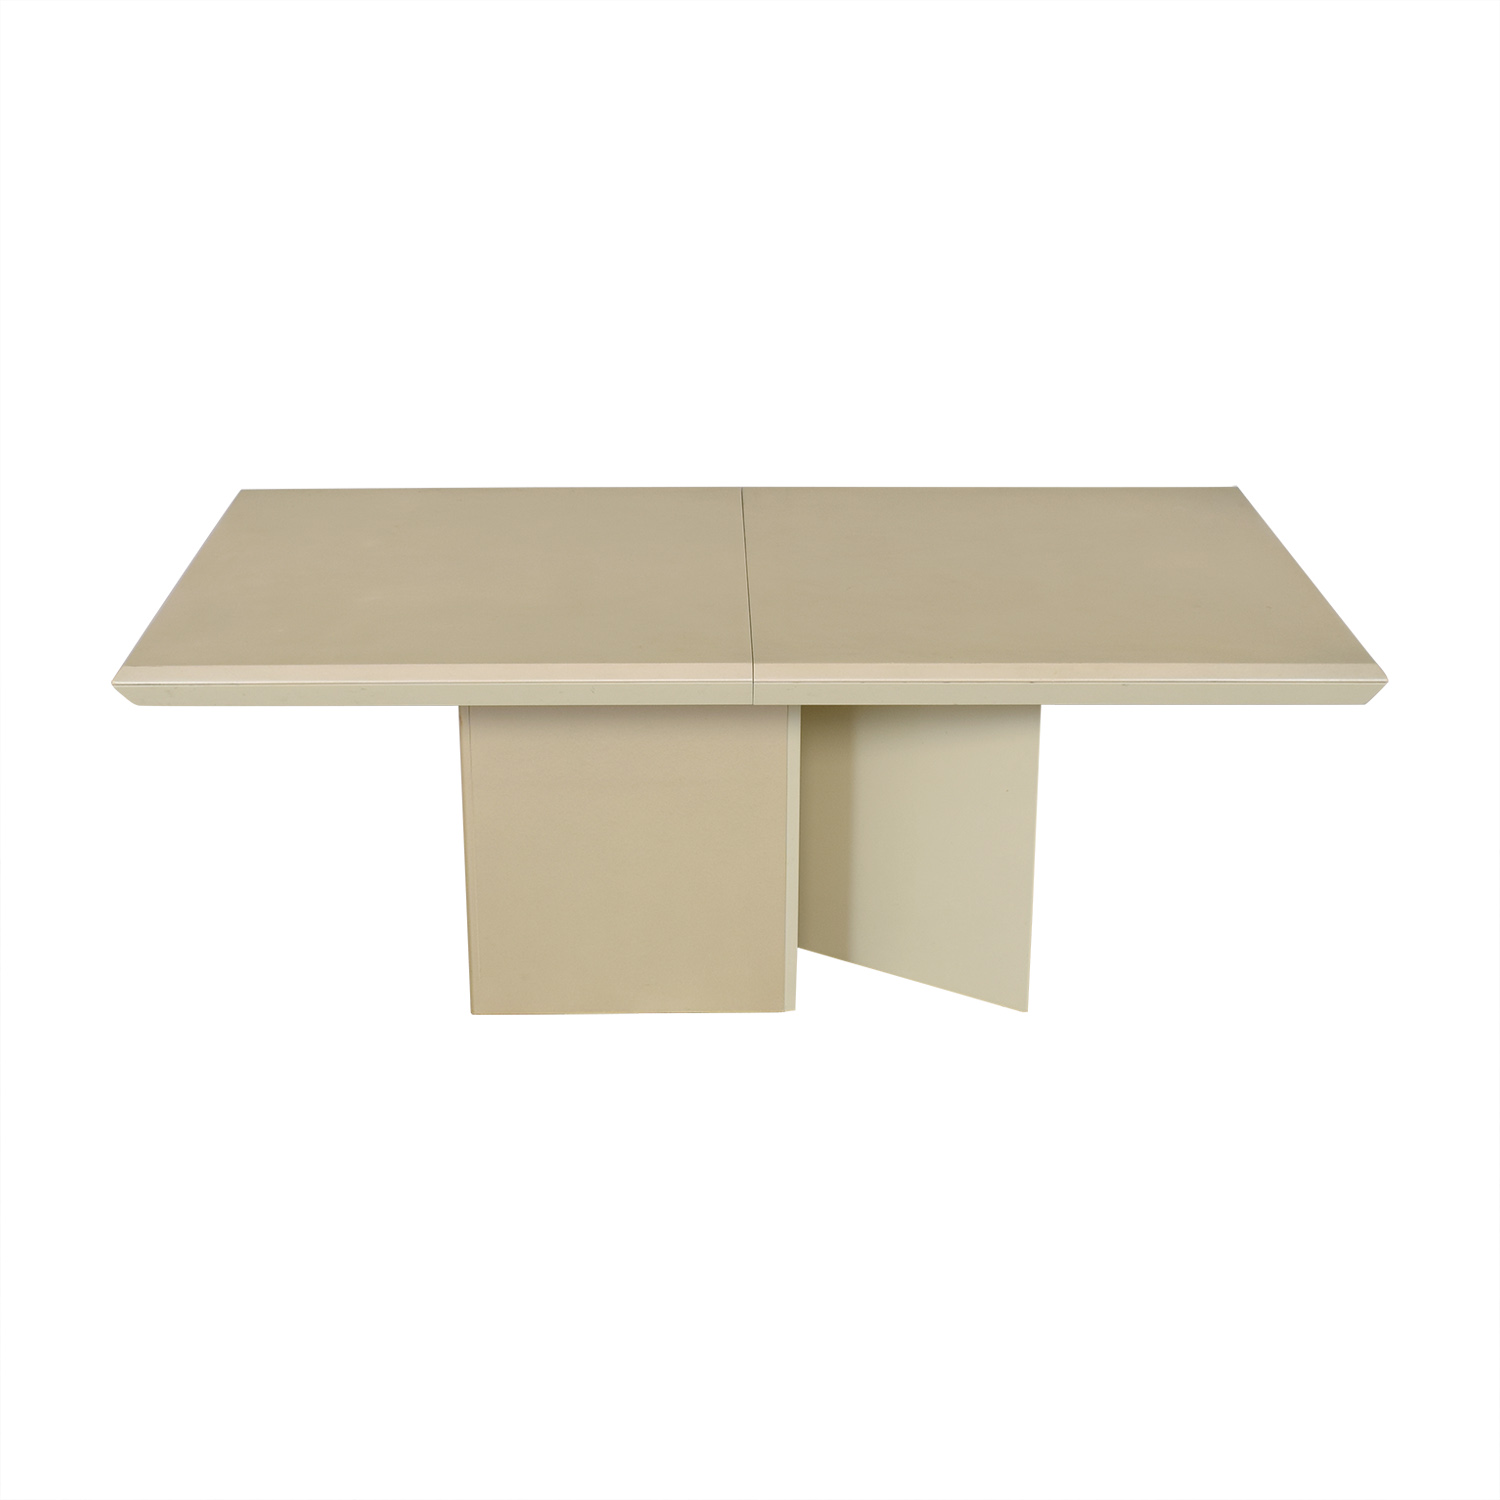 Carrier Furniture Carrier Furniture Extendable Dining Table on sale